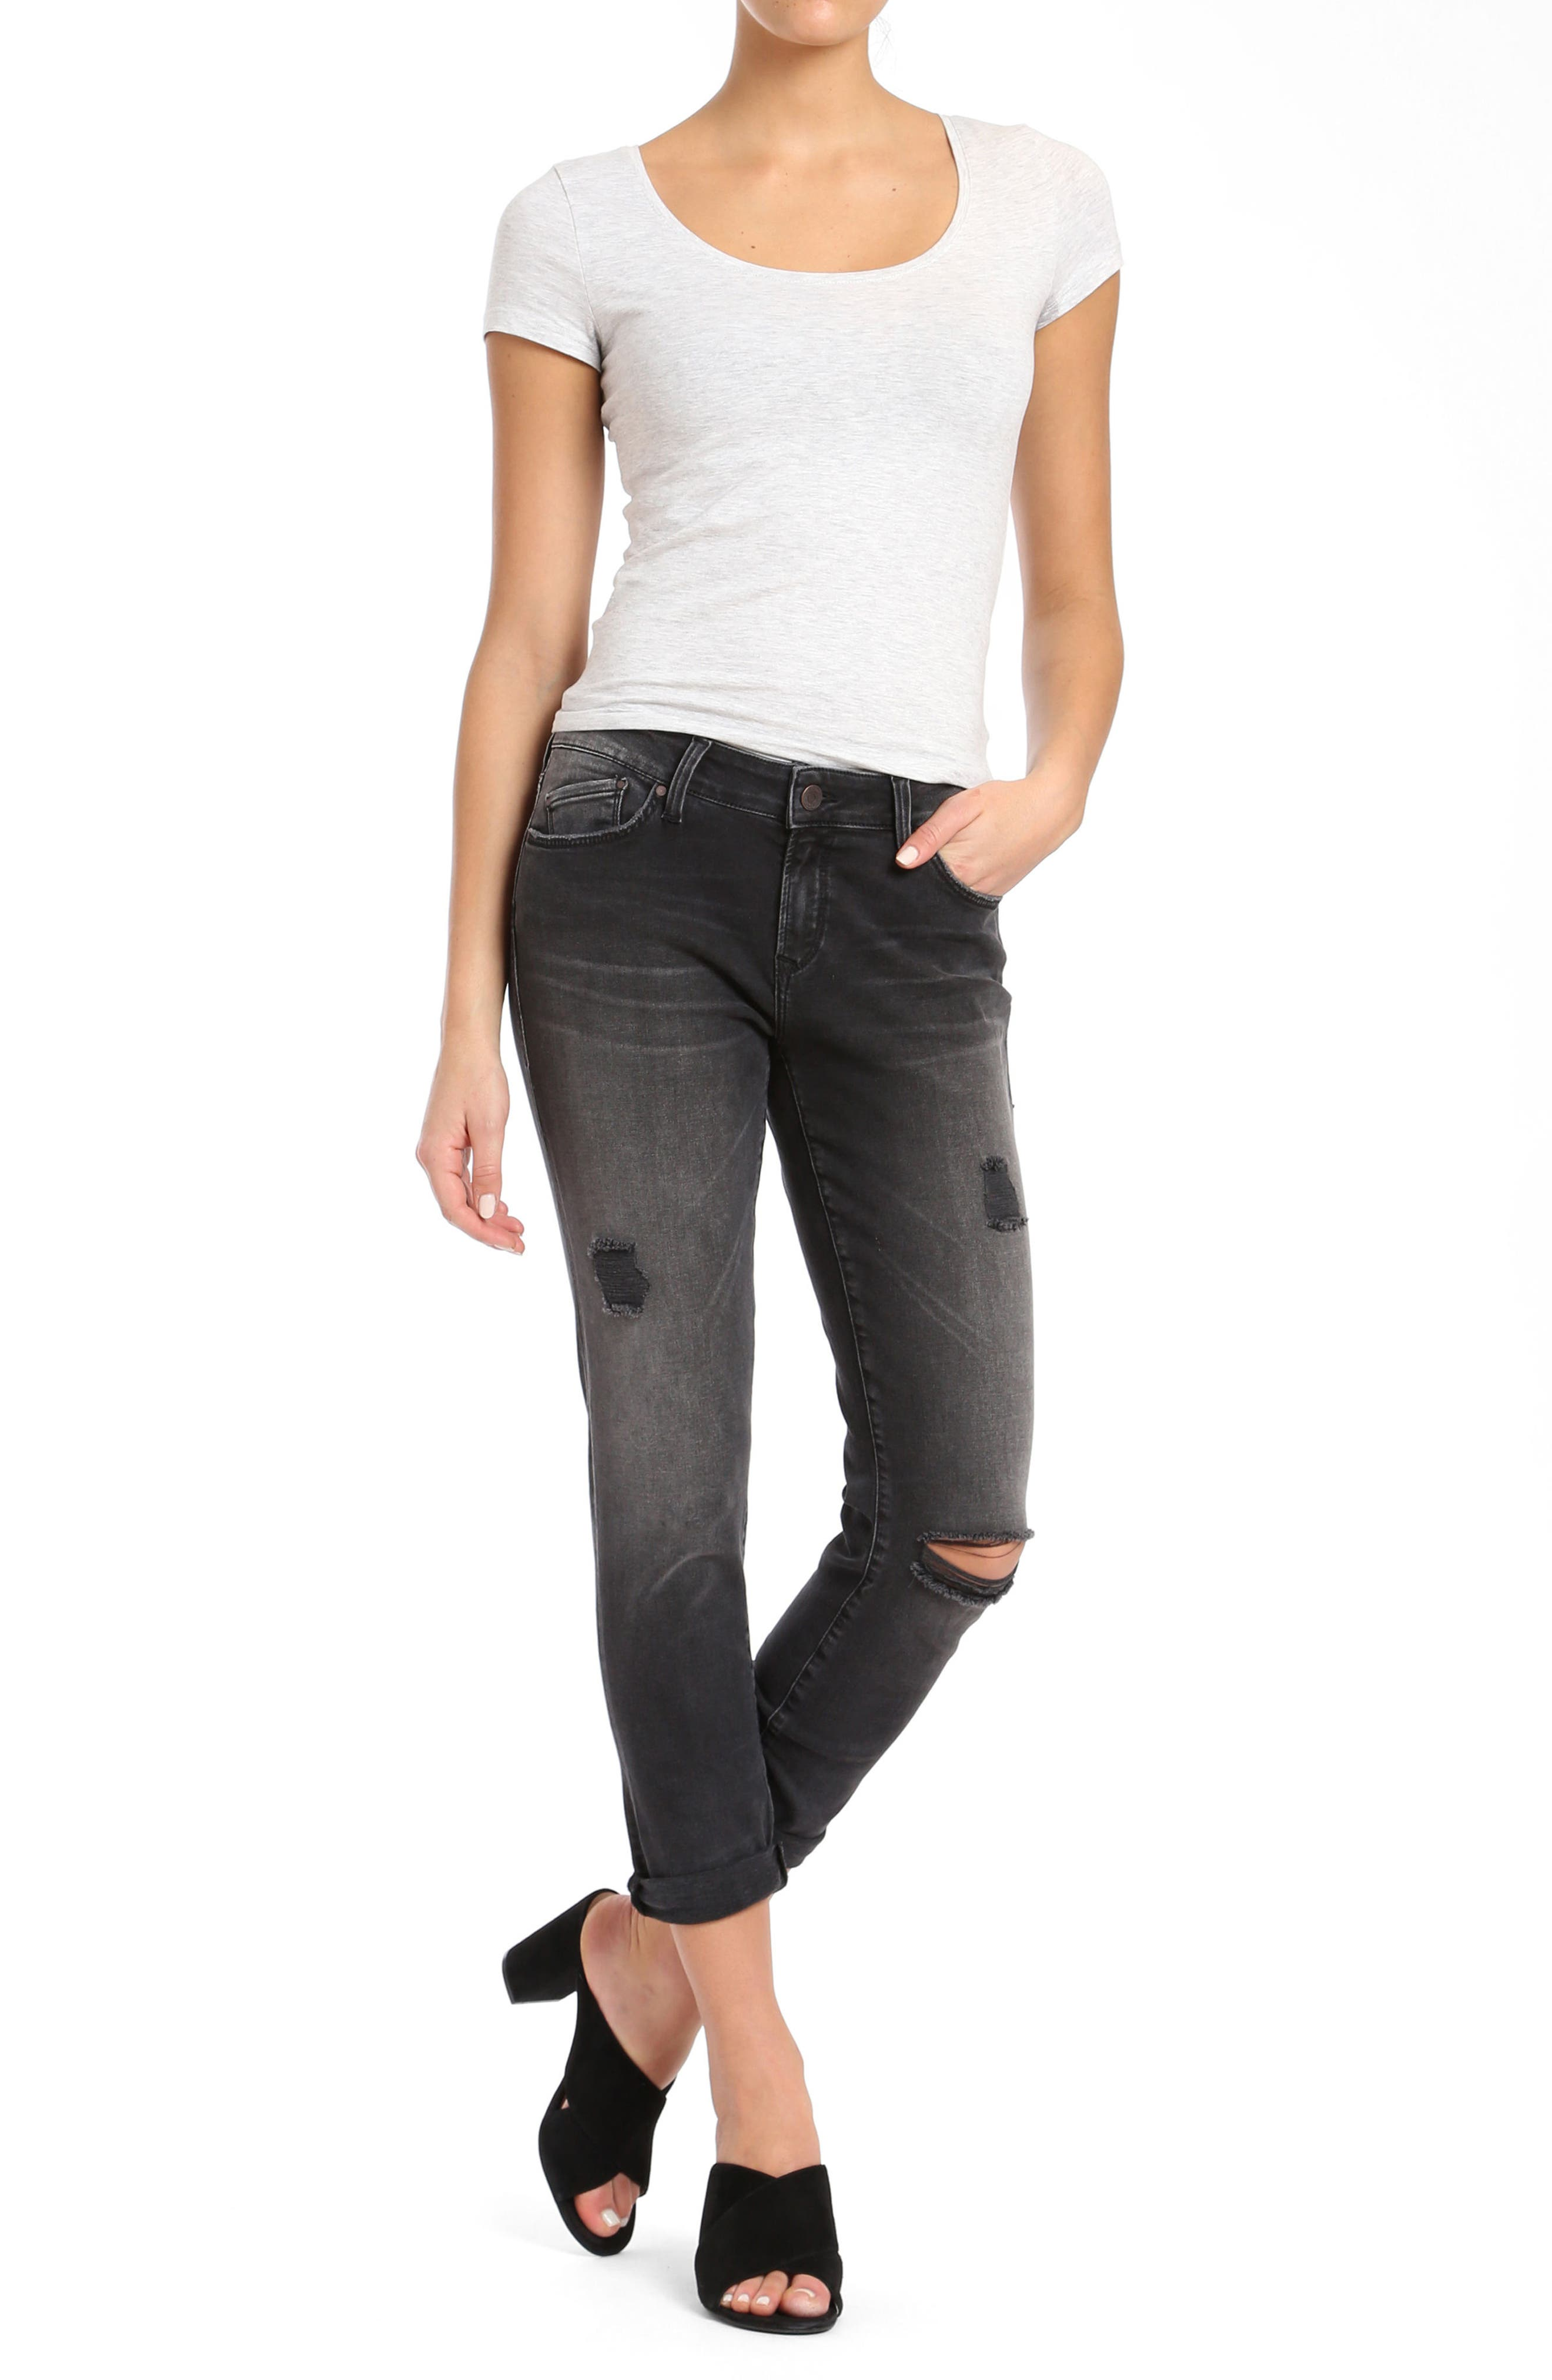 Alissa Super Skinny Ankle Jeans,                             Alternate thumbnail 8, color,                             SMOKE RIPPED NOLITA